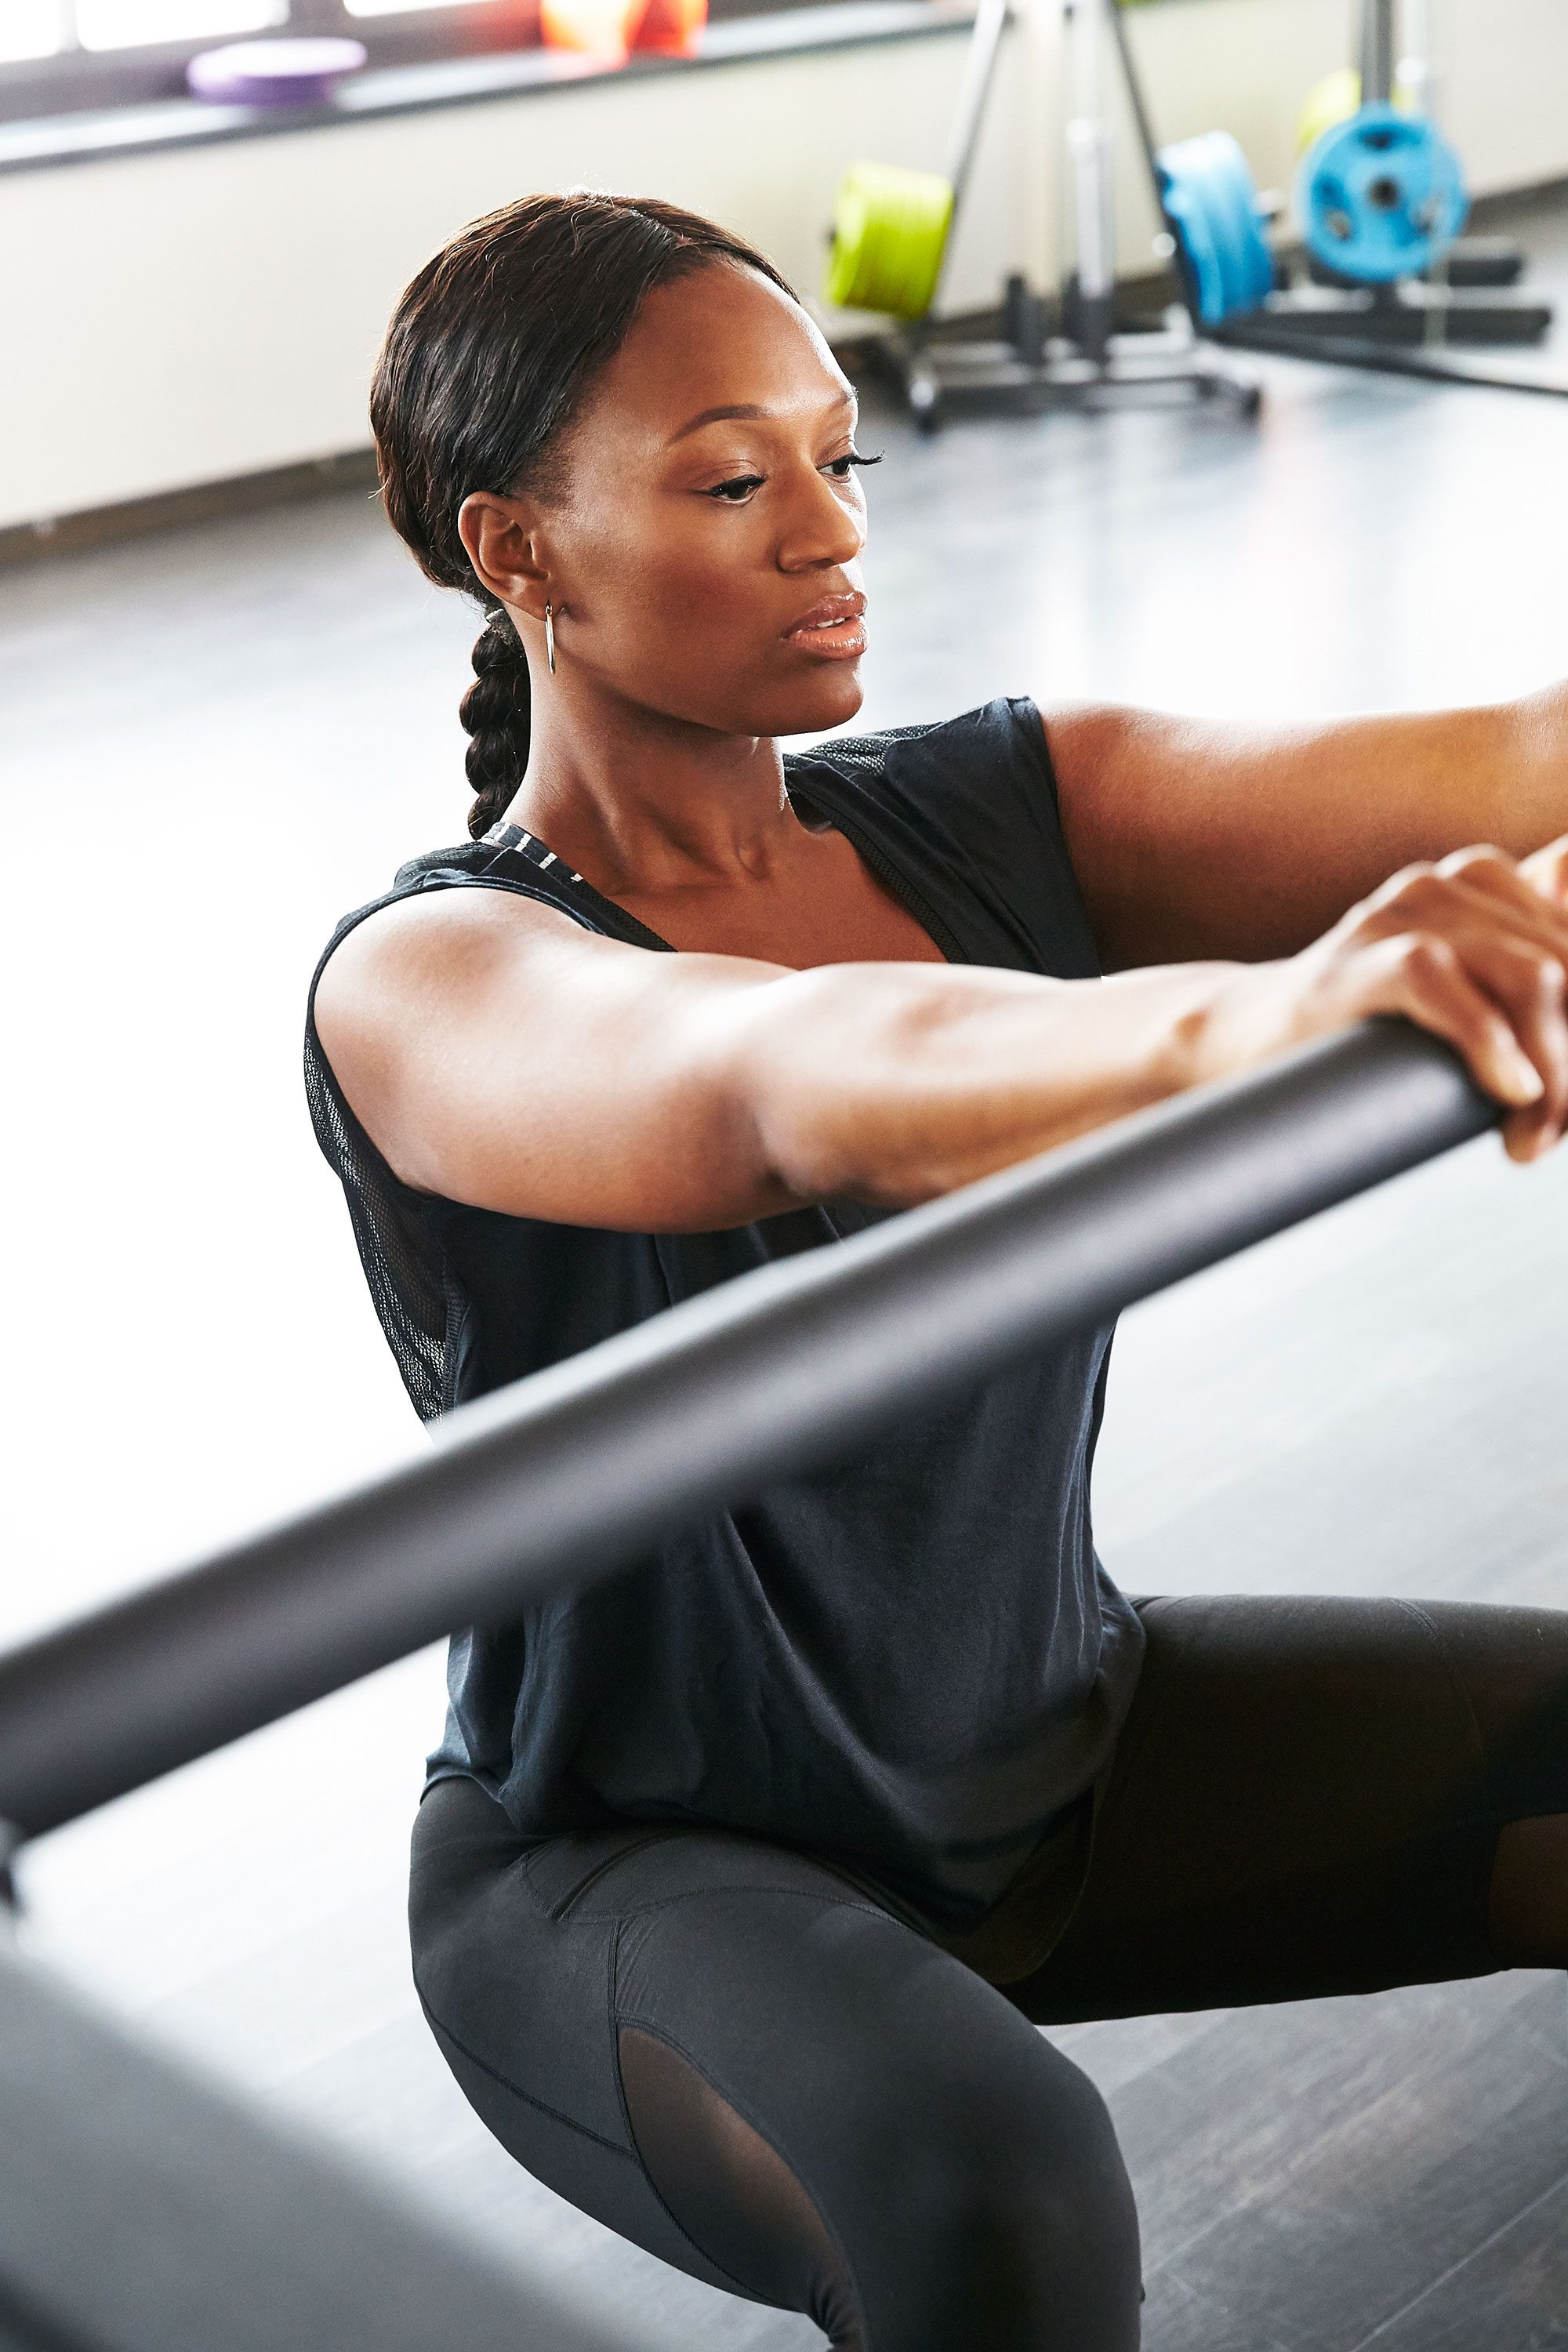 """<p>""""Warm up in a deep sitting position, while holding on to something for stability (a kitchen counter or the edge of your bed works), to mobilize the glutes and activate your back,"""" explains Pisano. """"This helps prepare your core for the intensive sequence.""""</p><p>Old Navy Light Support Ruched Cami Sports Bra in Black Stripe Top, $12, <a href=""""http://oldnavy.gap.com/browse/product.do?cid=1031681&vid=1&pid=429321142"""" target=""""_blank"""">oldnavy.com</a>; Nike T-Shirt With Back Panel Detail, $53.75, <a href=""""http://www.asos.com/Nike/Nike-T-Shirt-With-Back-Panel-Detail/Prod/pgeproduct.aspx?iid=5839328&istCompanyId=6f061ed0-7427-4b6c-bb90-987c0bd08468&istItemId=qwrrwtlxx&istBid=tztx&affid=14173&channelref=google+shopping&utm_source=google&utm_medium=ppc&utm_term=65701215872&utm_content=&utm_campaign=&cvosrc=ppc.google.65701215872&network=g&mobile=&search=1&content=&creative=84679695741&ptid=65701215872&adposition=1o1&r=2&mk=ab&gclid=CjwKEAiA2IO0BRDXmLndksSB0WgSJADNKqqoIVvvmFsFKL65ykts8W1CpgiHbVgsRoDv4-ueDe1erhoCfZrw_wcB"""" target=""""_blank"""">asos.com</a>; Old Navy Mesh-Panel Compression Leggings in Blackjack, $32.94, <a href=""""http://oldnavy.gap.com/browse/product.do?cid=53935&vid=1&pid=597001002"""" target=""""_blank"""">oldnavy.com</a>; Nike Air Zoom Fit Agility 2 in Black/White, $130, <a href=""""http://store.nike.com/us/en_us/pd/air-zoom-fit-agility-2-training-shoe/pid-10337859/pgid-10337860"""" target=""""_blank"""">nike.com</a></p>"""